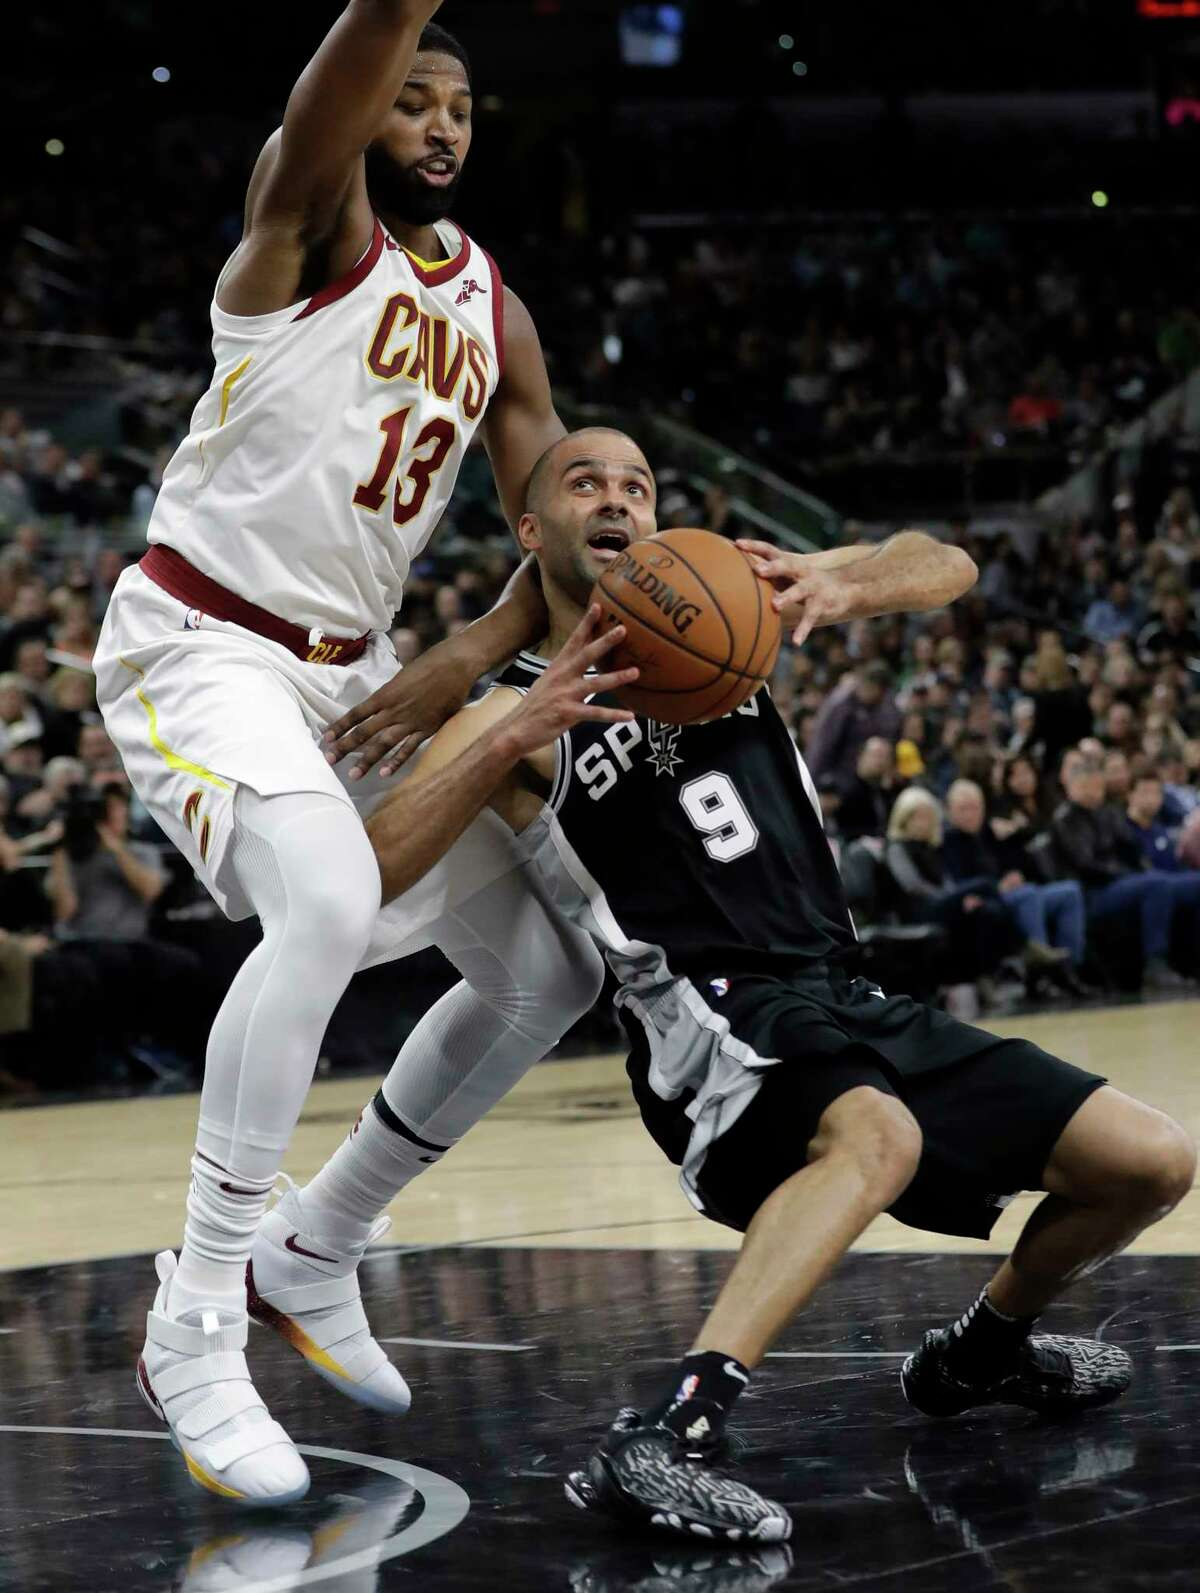 San Antonio Spurs guard Tony Parker (9) is pressured by Cleveland Cavaliers center Tristan Thompson (13) as he tries to score during the second half of an NBA basketball game, Tuesday, Jan. 23, 2018, in San Antonio. San Antonio won 114-102. (AP Photo/Eric Gay)